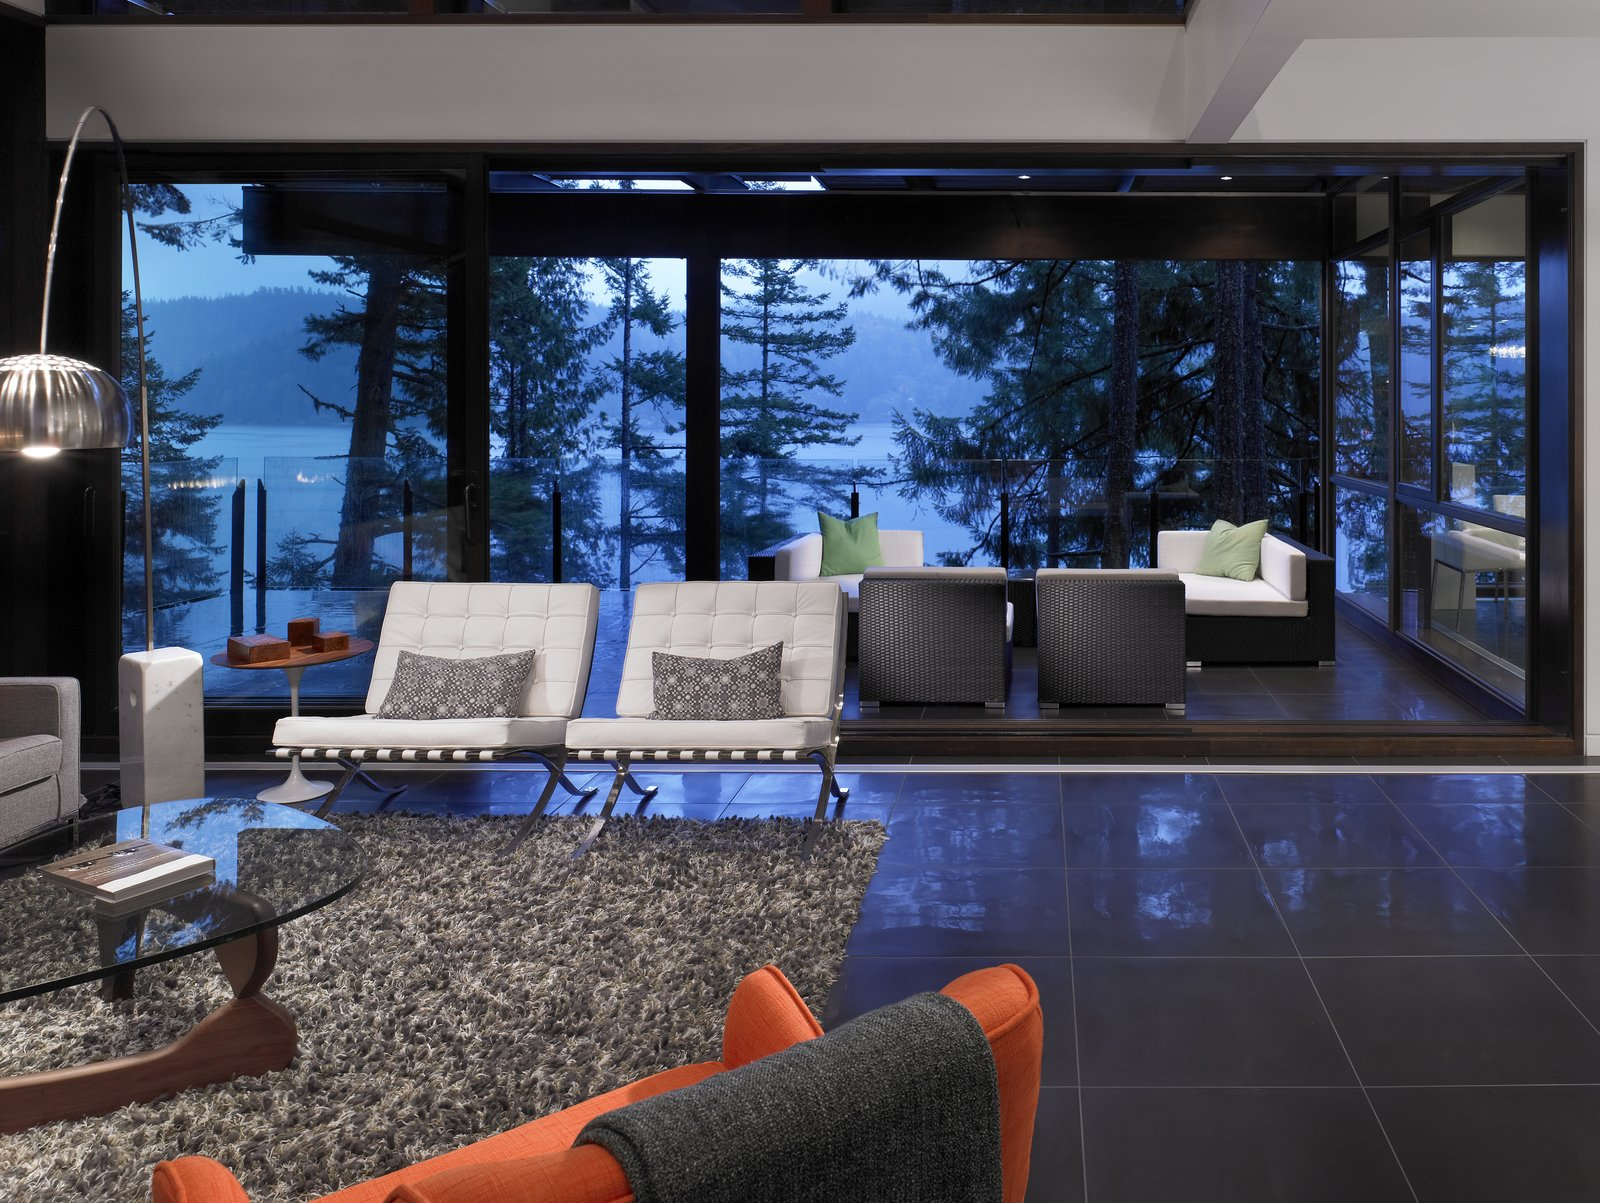 Living Room, Chair, Coffee Tables, and Floor Lighting  Photo 5 of 6 in Turkel Design's Award-Winning Gambier Island House